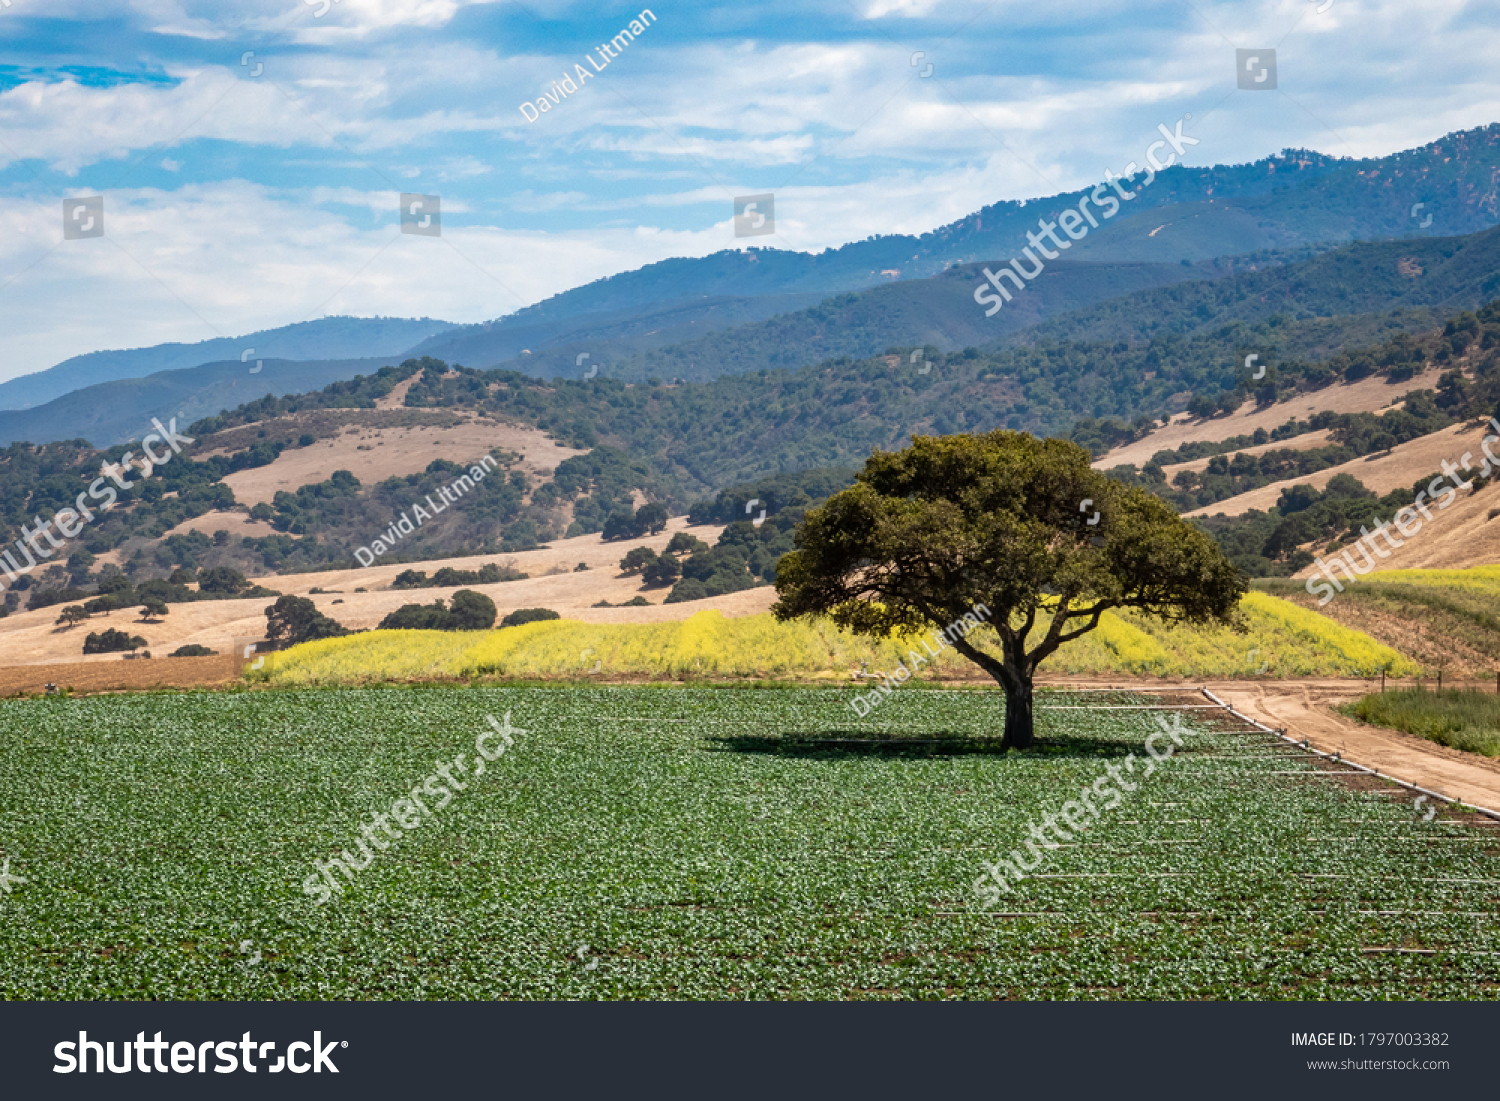 A coastal live oak tree stands alone on a field of lettuce crops, in the Salinas Valley of central California, in Monterey County.